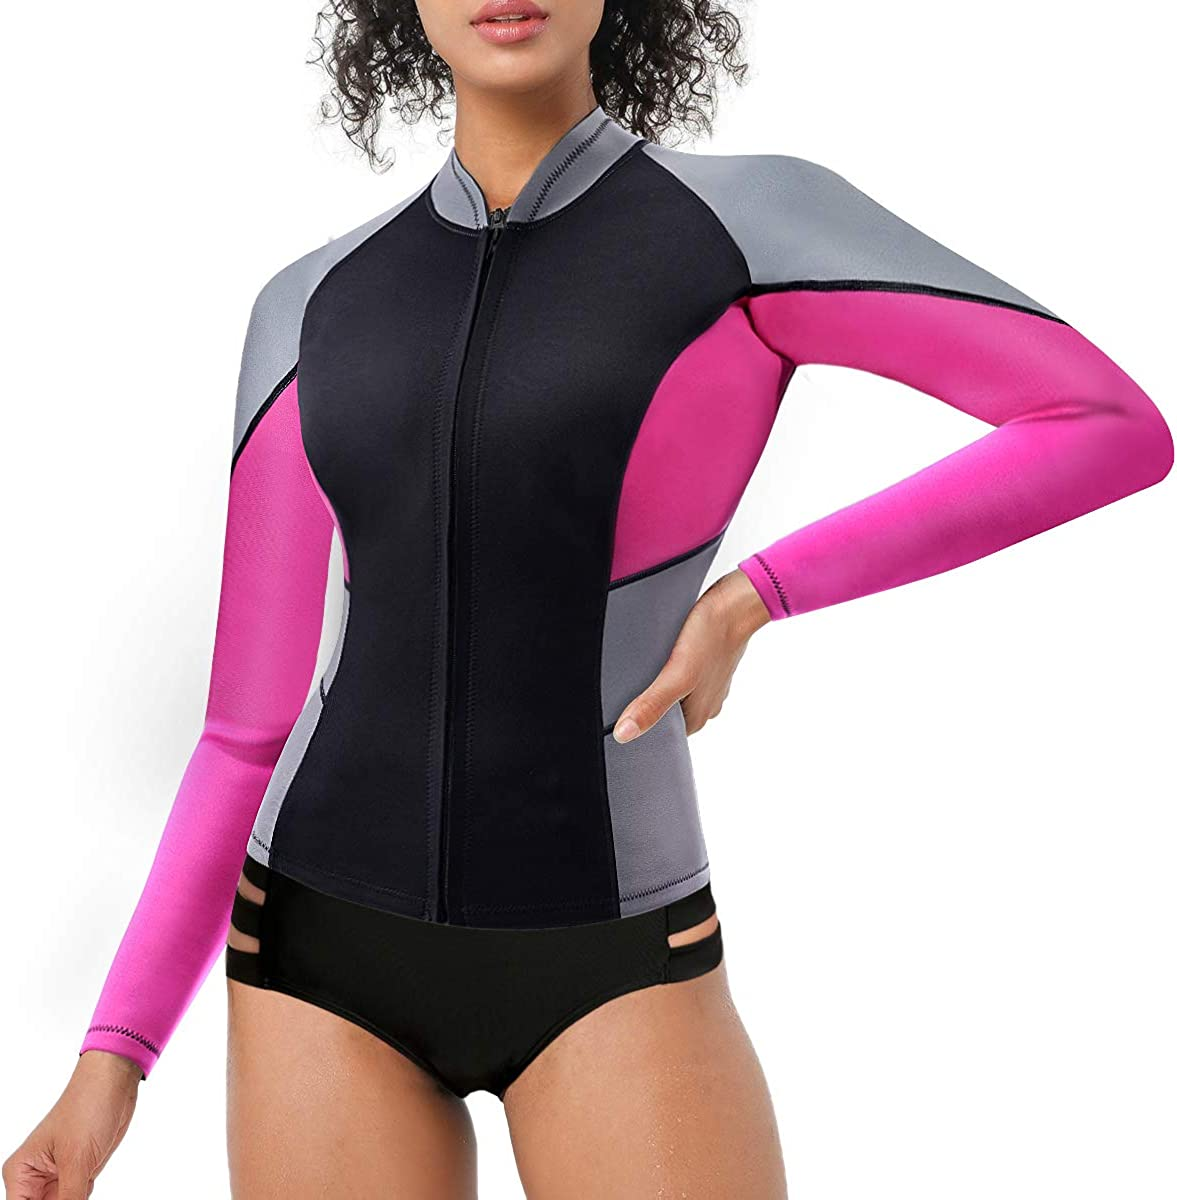 Women/'s Wetsuit Long Sleeve Jacket CtriLady Wetsuit Top Neoprene 1.5mm High-Necked Wetsuits with Front Zipper for Swimming Diving Surfing Boating Kayaking Snorkeling